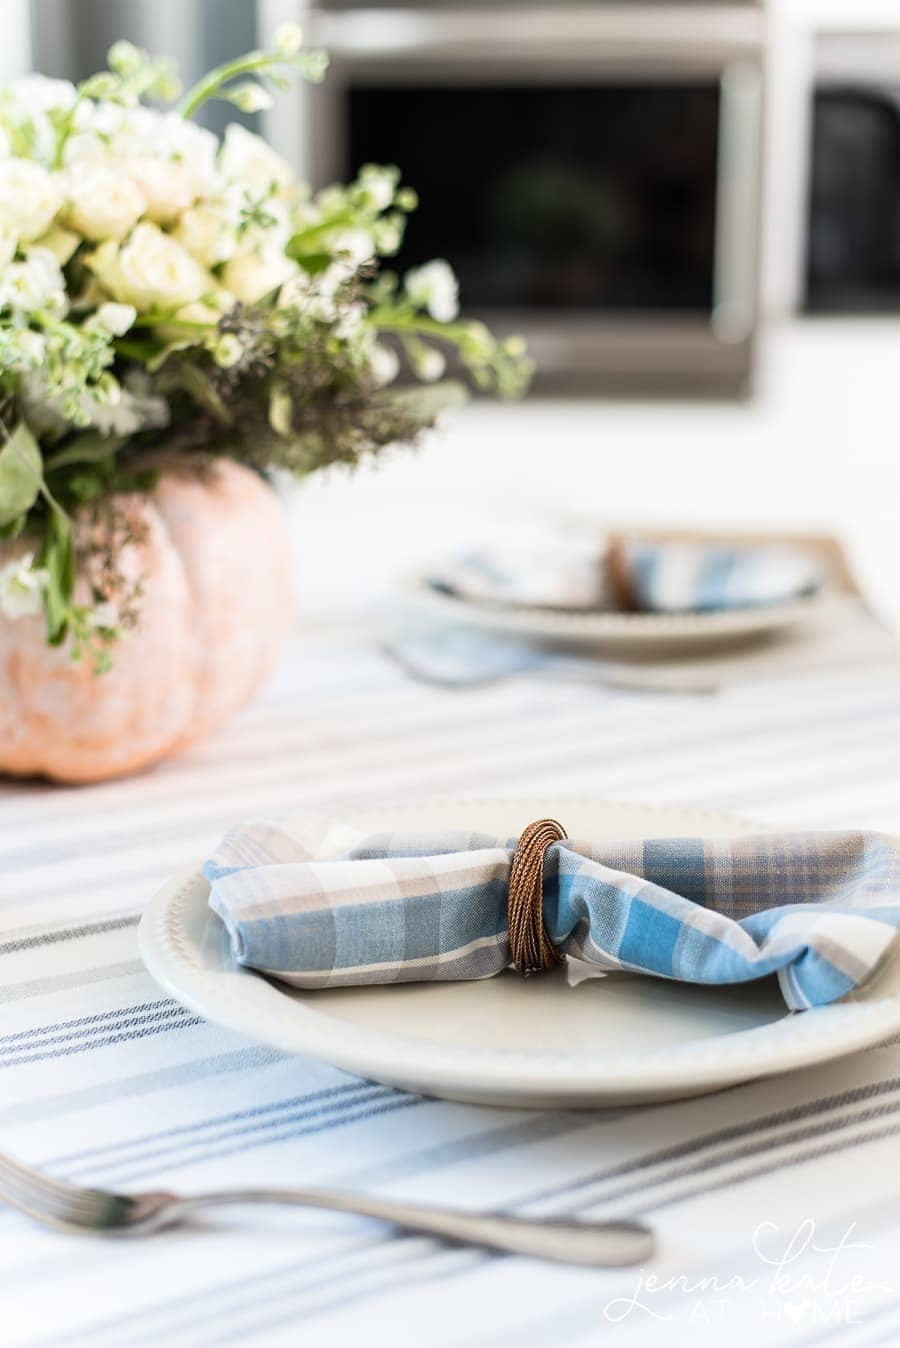 switching up your napkins is an easy way to transition to fall decor